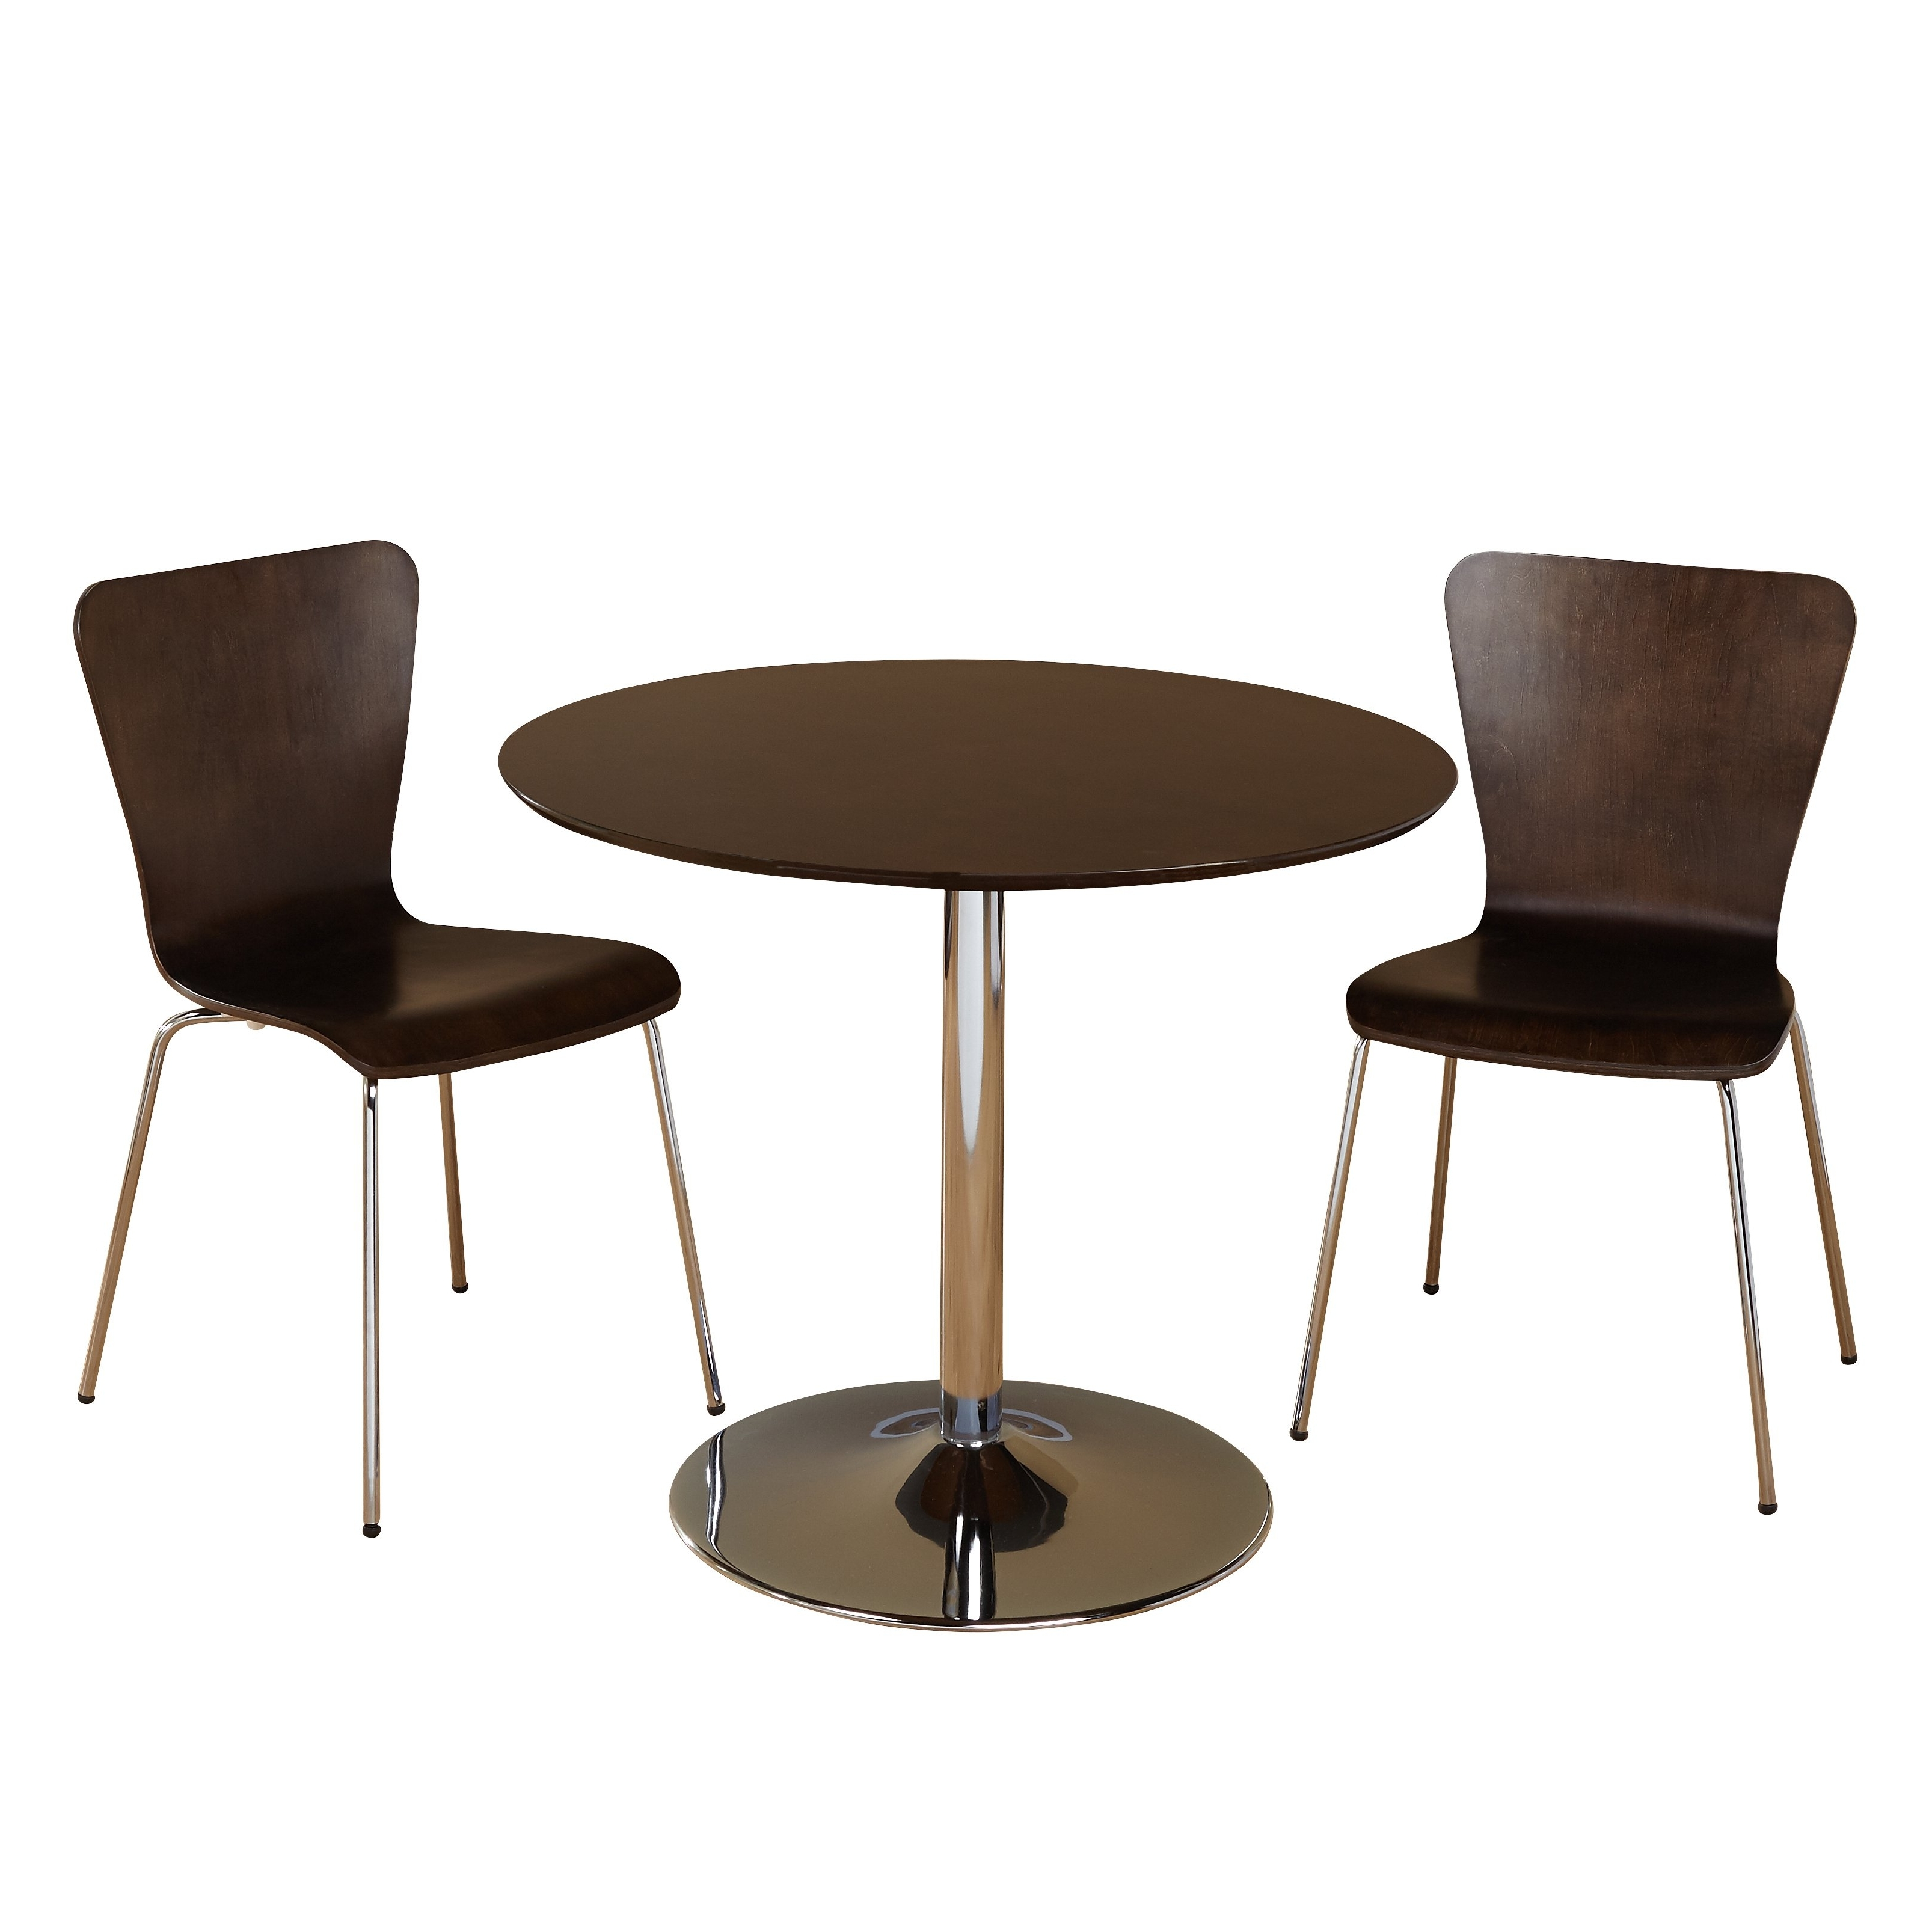 Widely Used Shop 3 Piece Pisa Dining Set – Free Shipping Today – Overstock Inside Pisa Dining Tables (View 23 of 25)